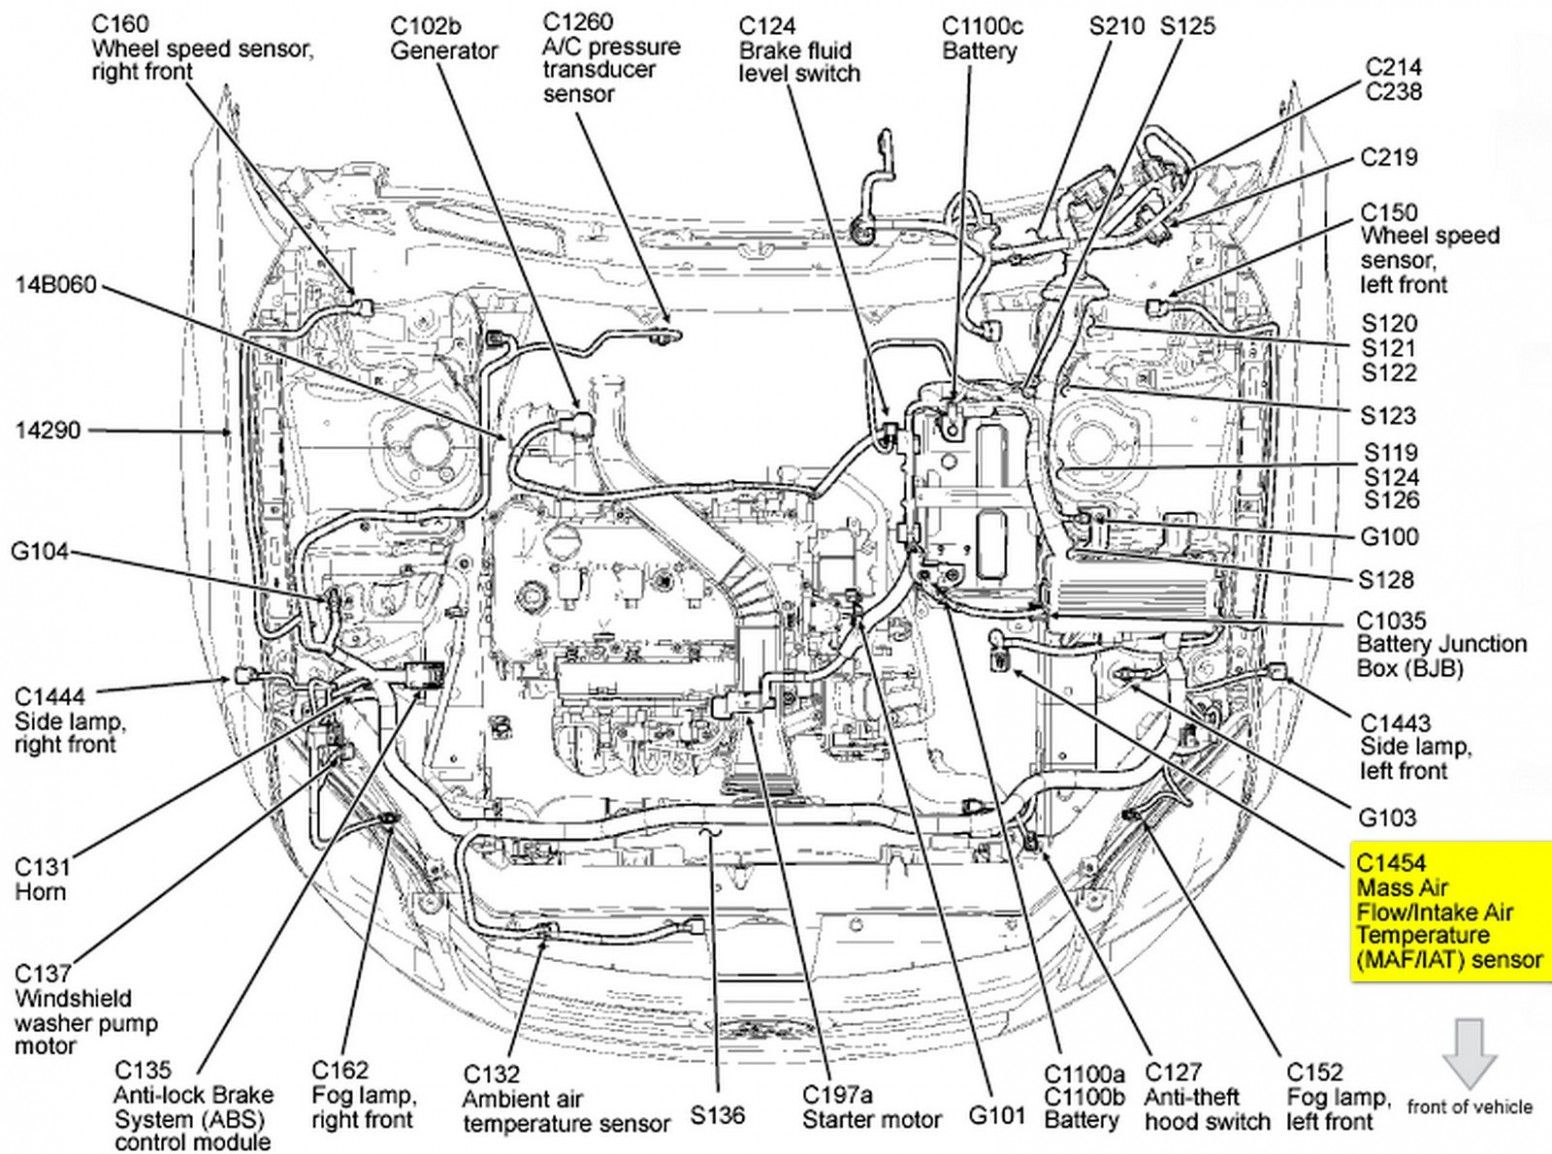 5 Ford Focus Engine Bay Diagram in 2020 | Ford focus engine, Ford focus,  Ford focus sedanPinterest